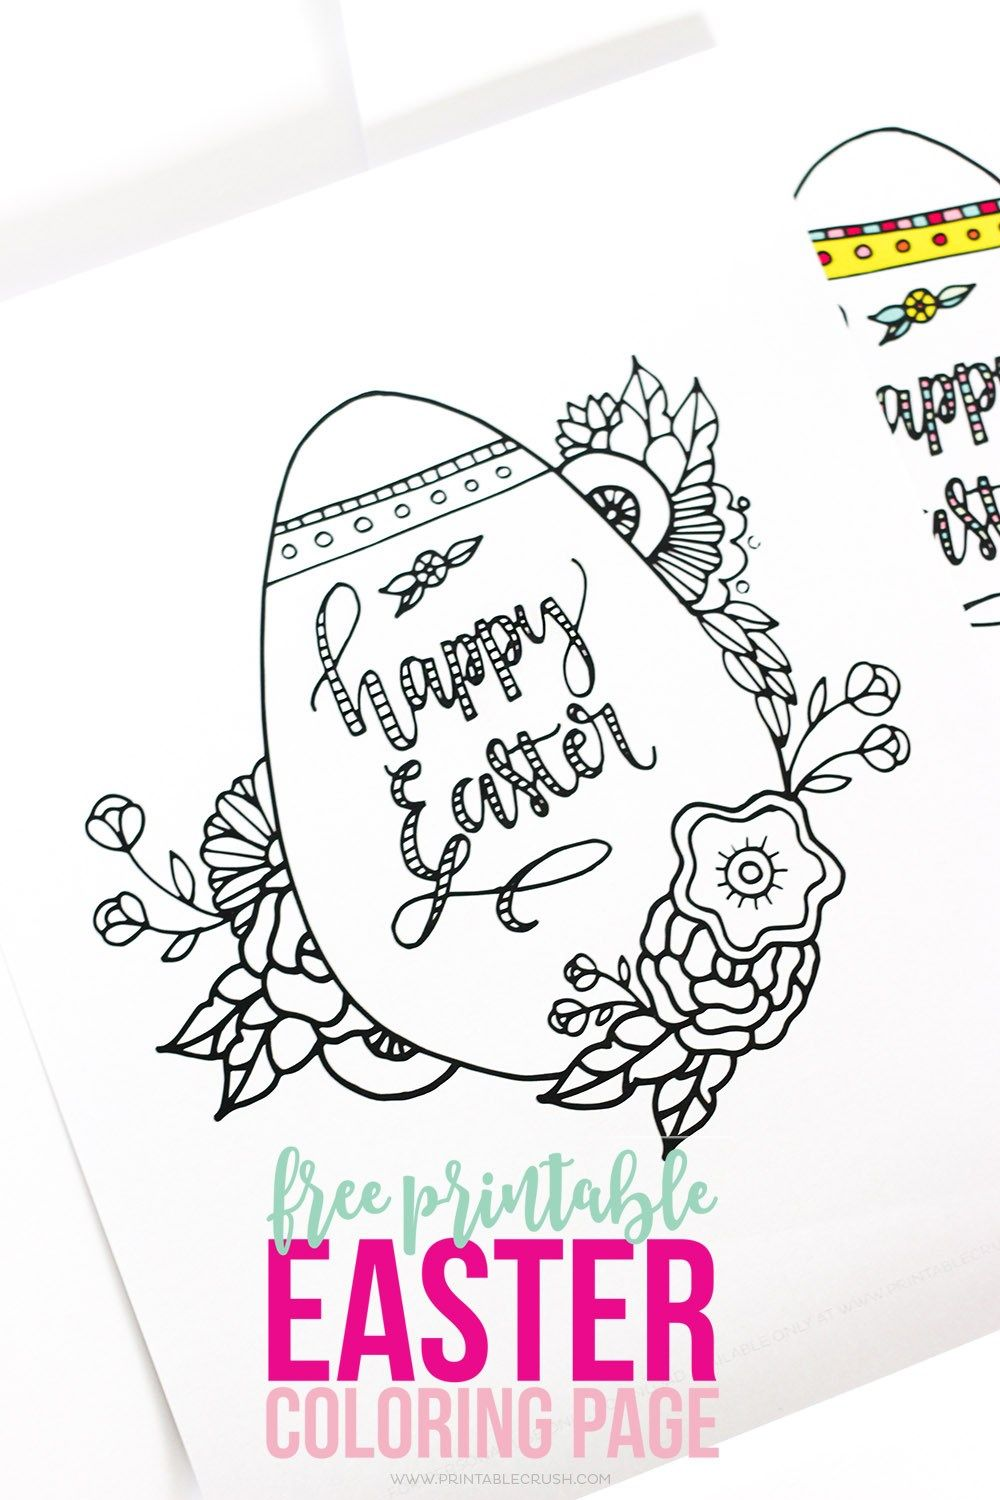 Easter Coloring Pages | 1500x1000